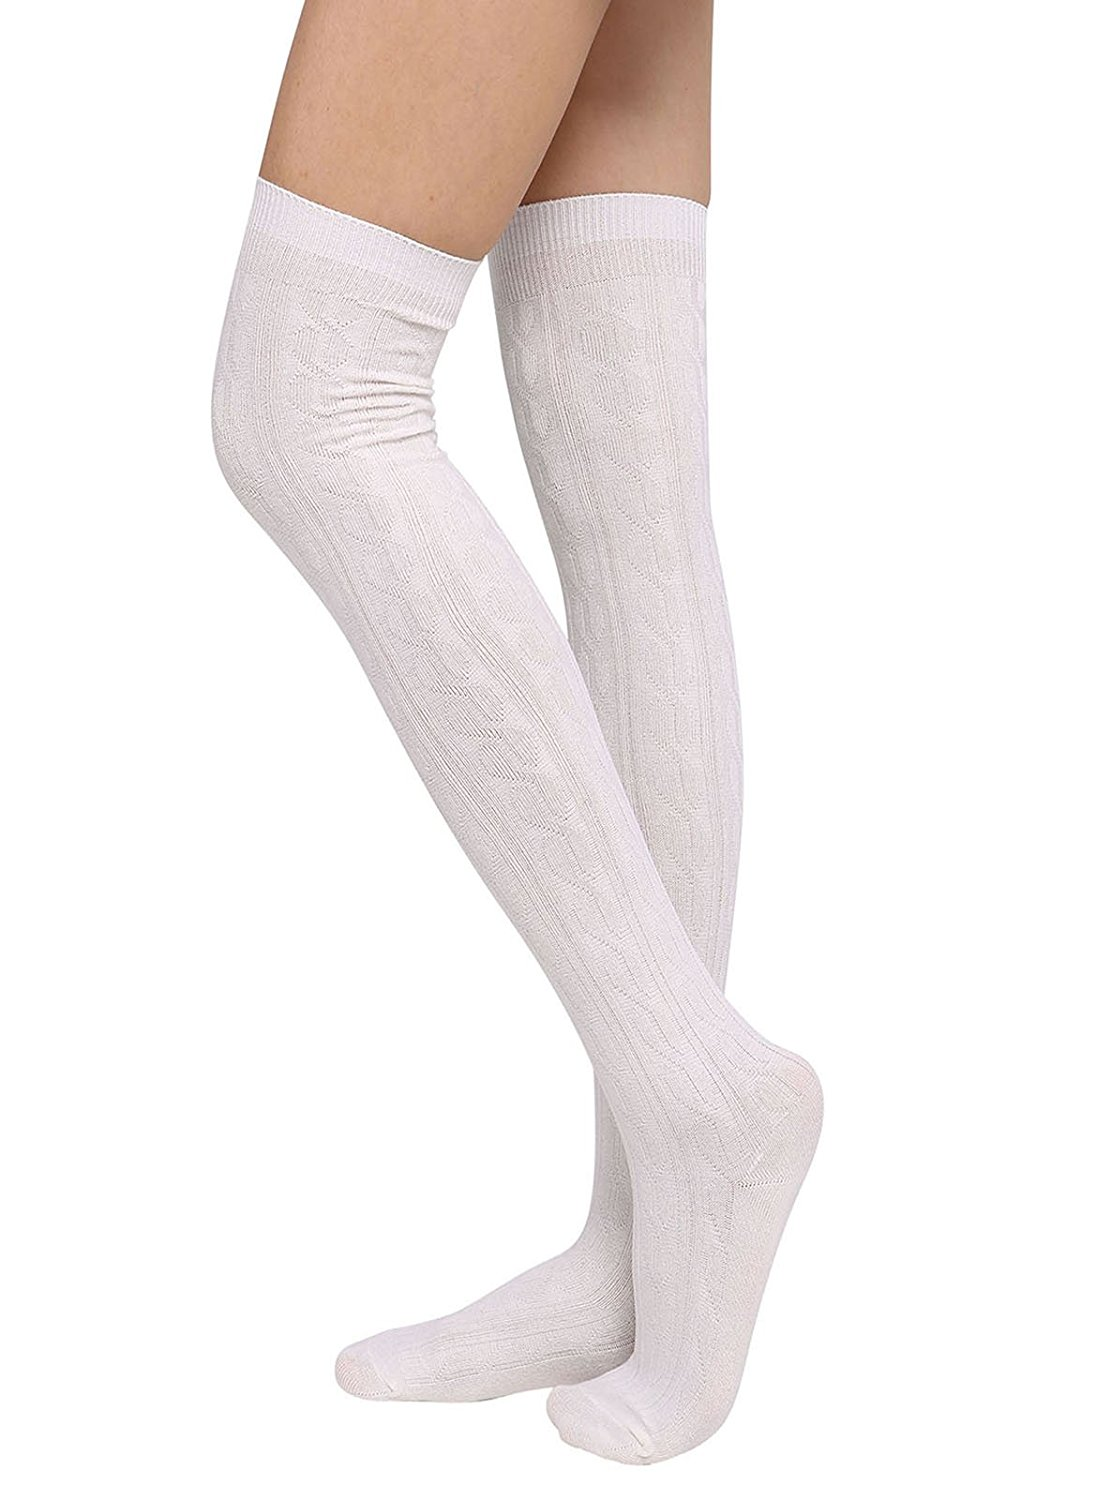 3373a5ce4 Get Quotations · Womens Winter Cable Knit Over Knee High Tigh High Socks  1-3 Pairs